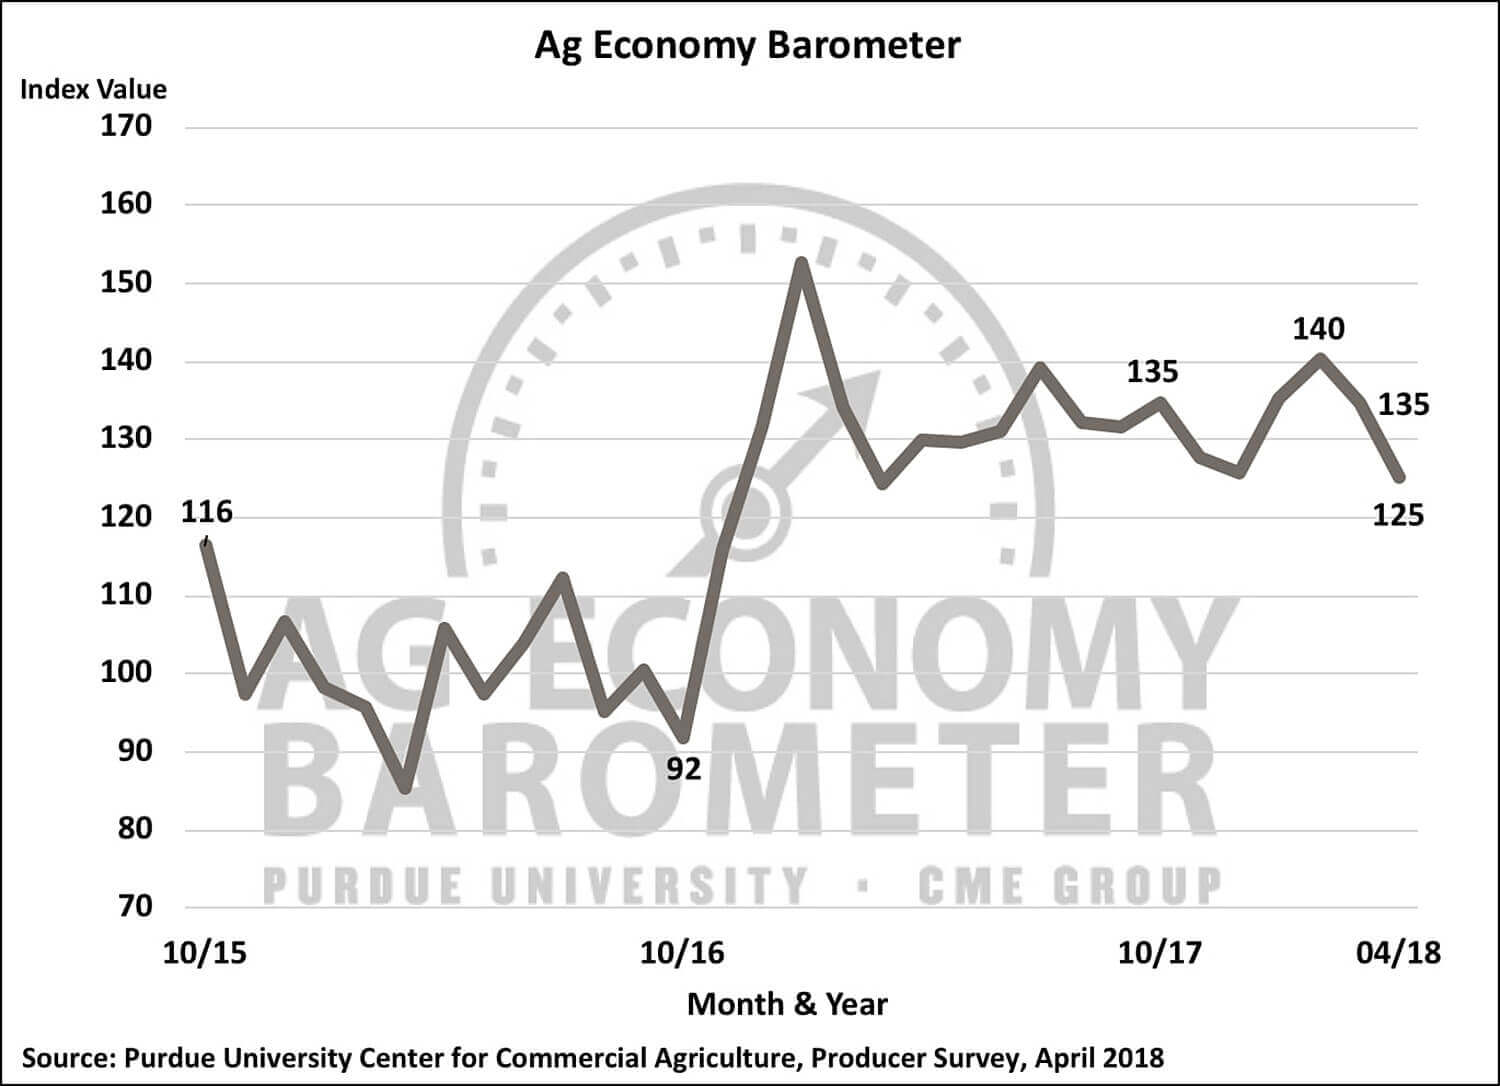 Ag Barometer Declines For Second Month Amid Looming Trade War Concerns